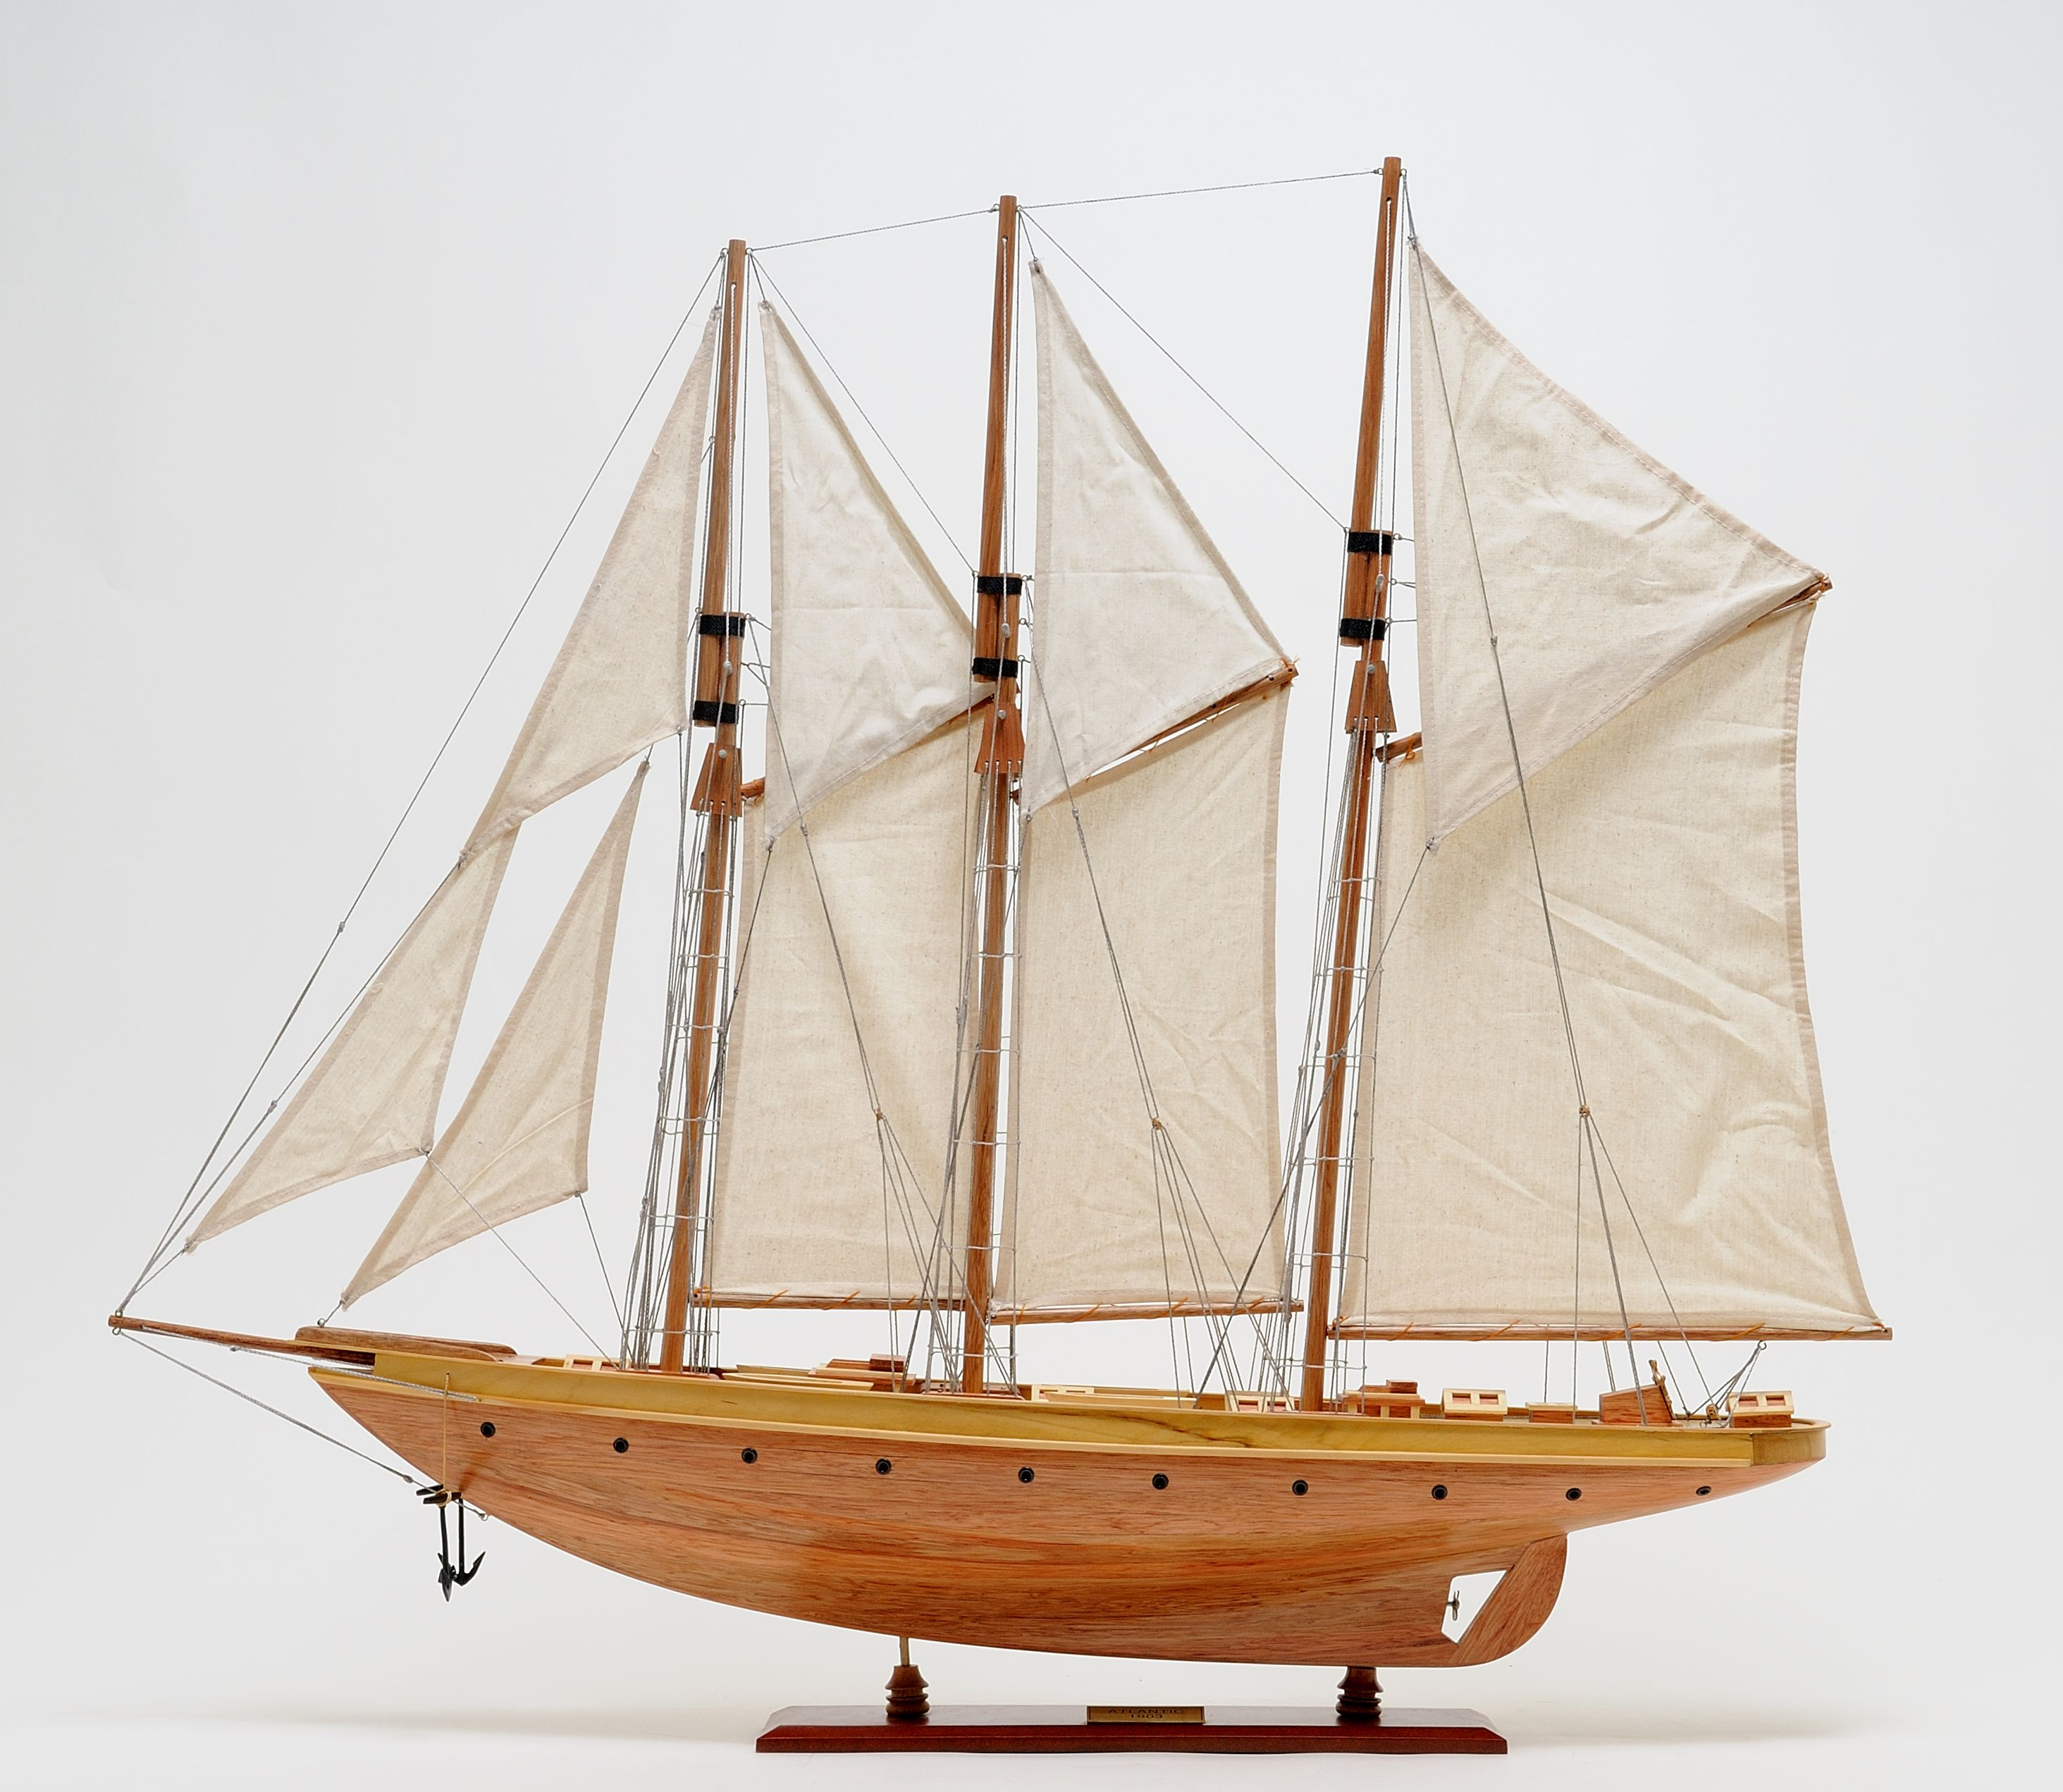 2278-13027-Atlantic-Model-Yacht